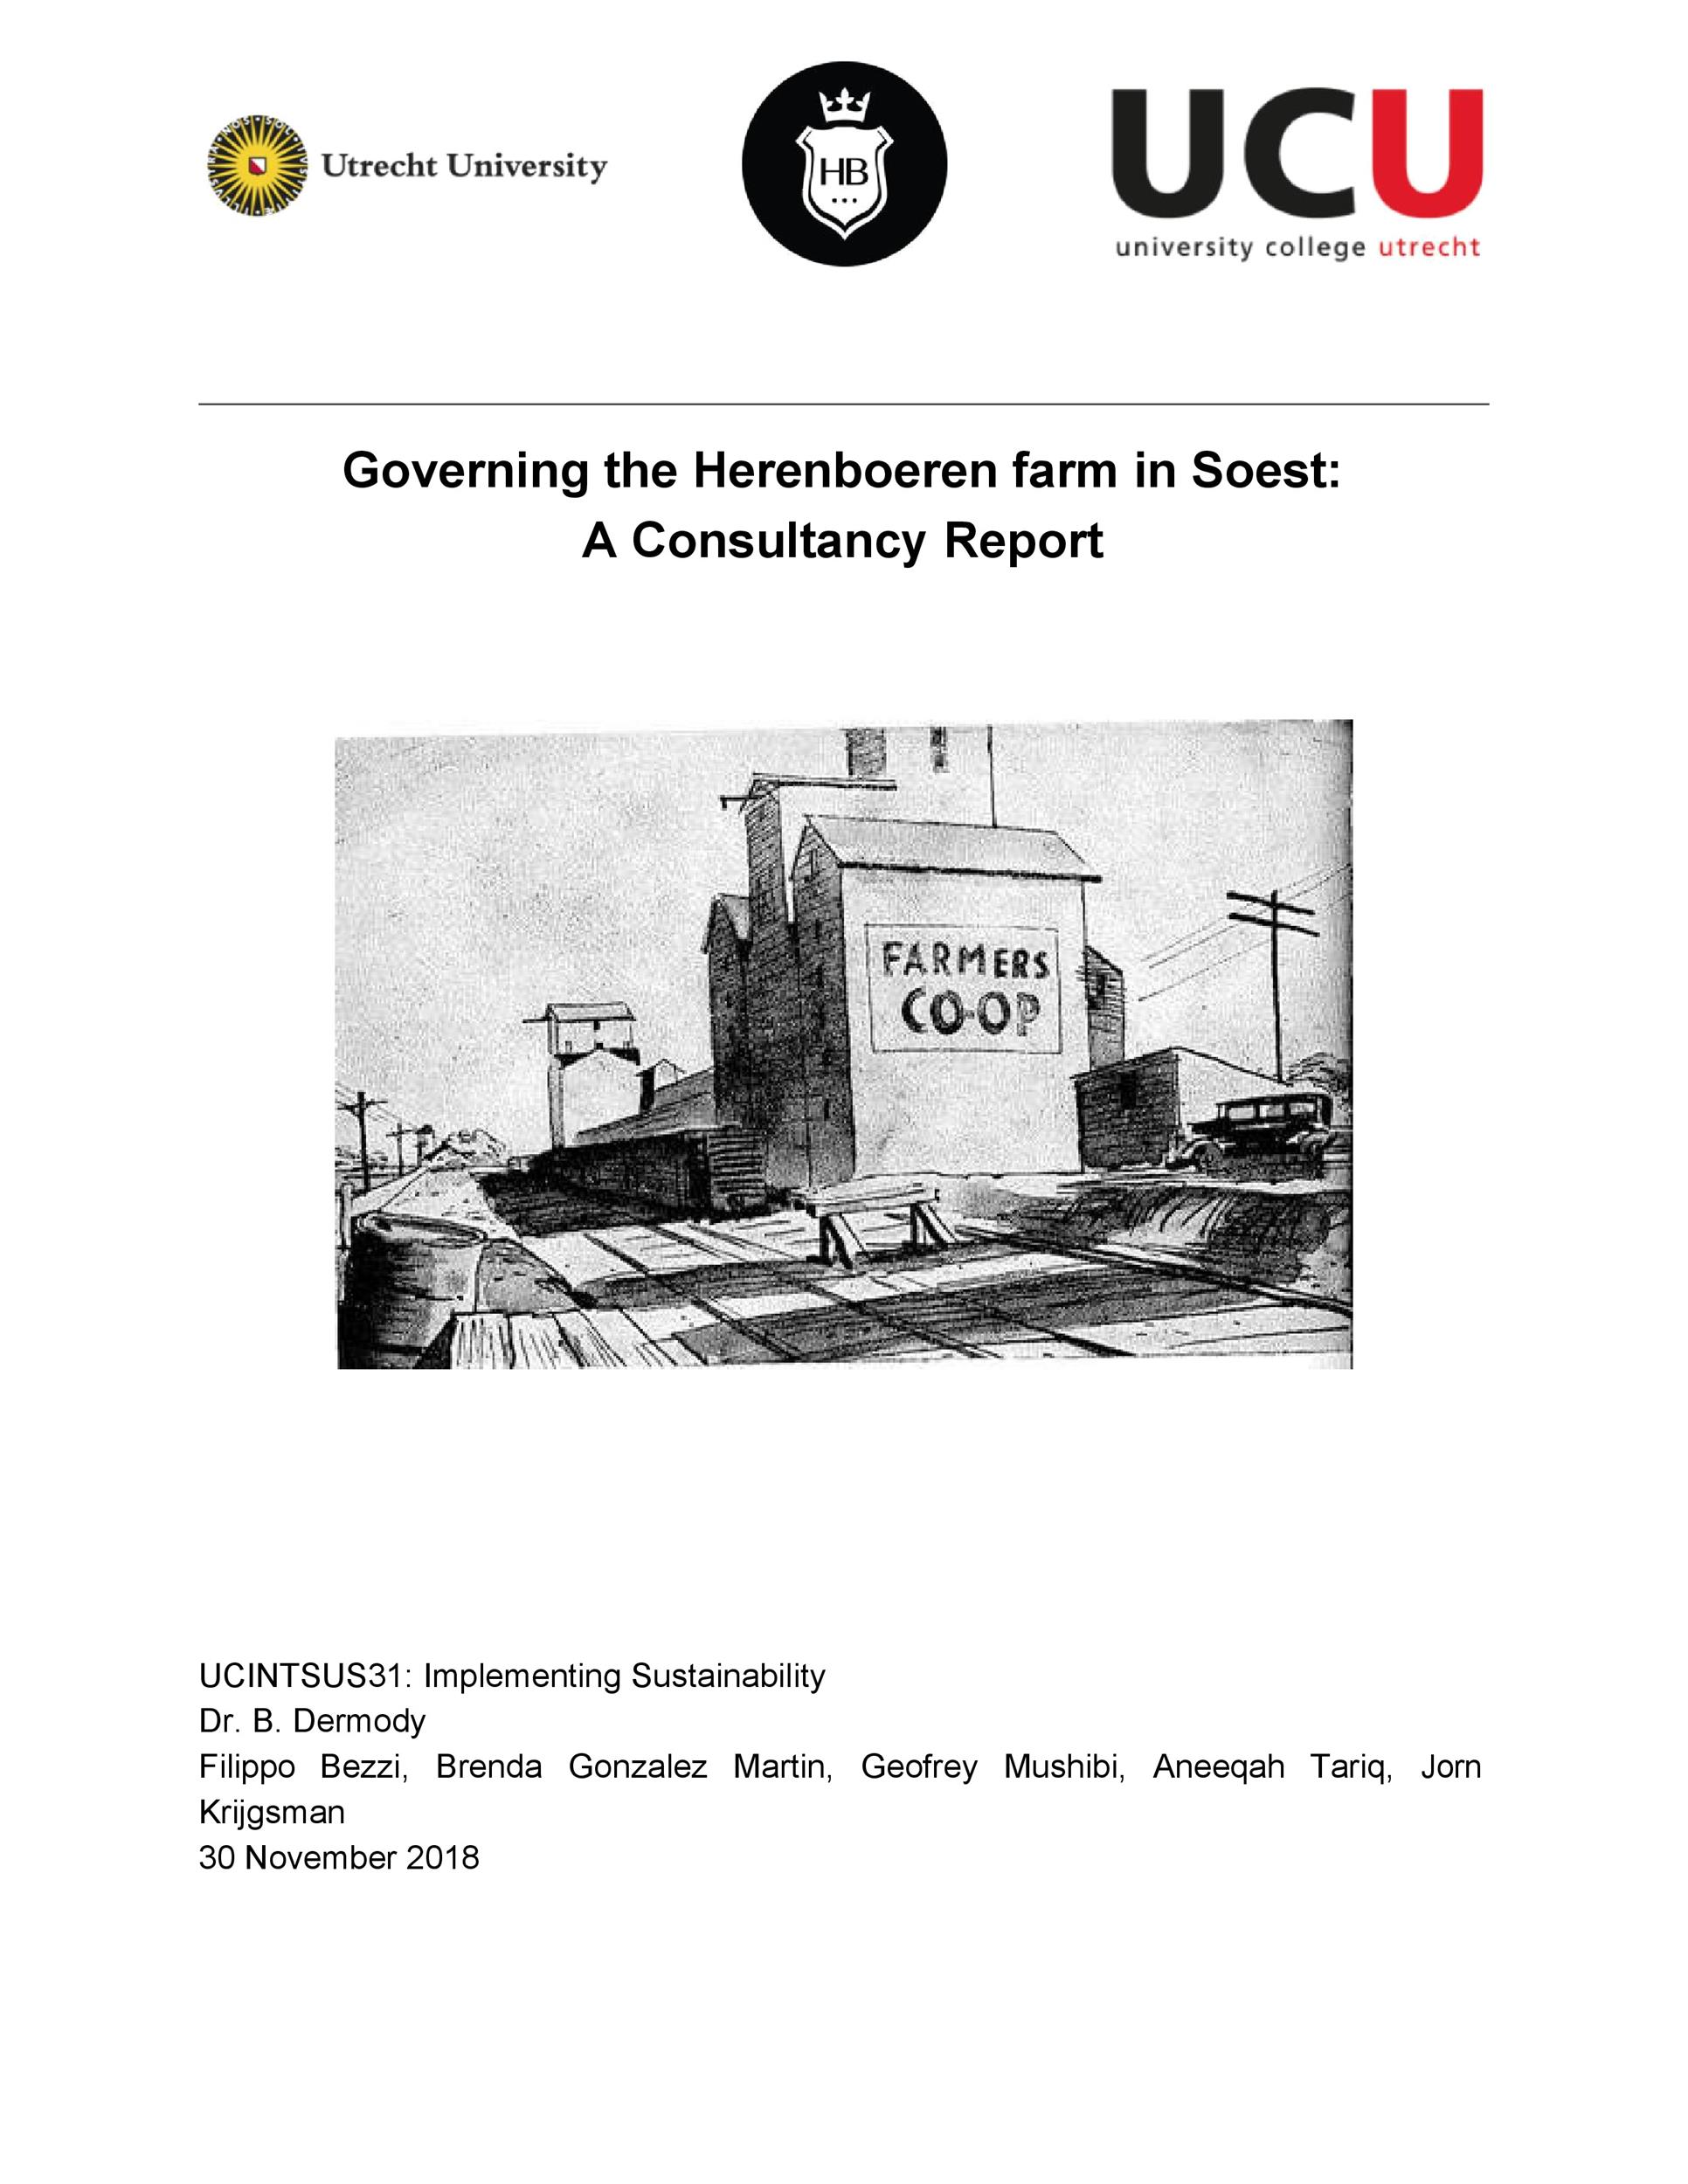 Free consulting report template 21